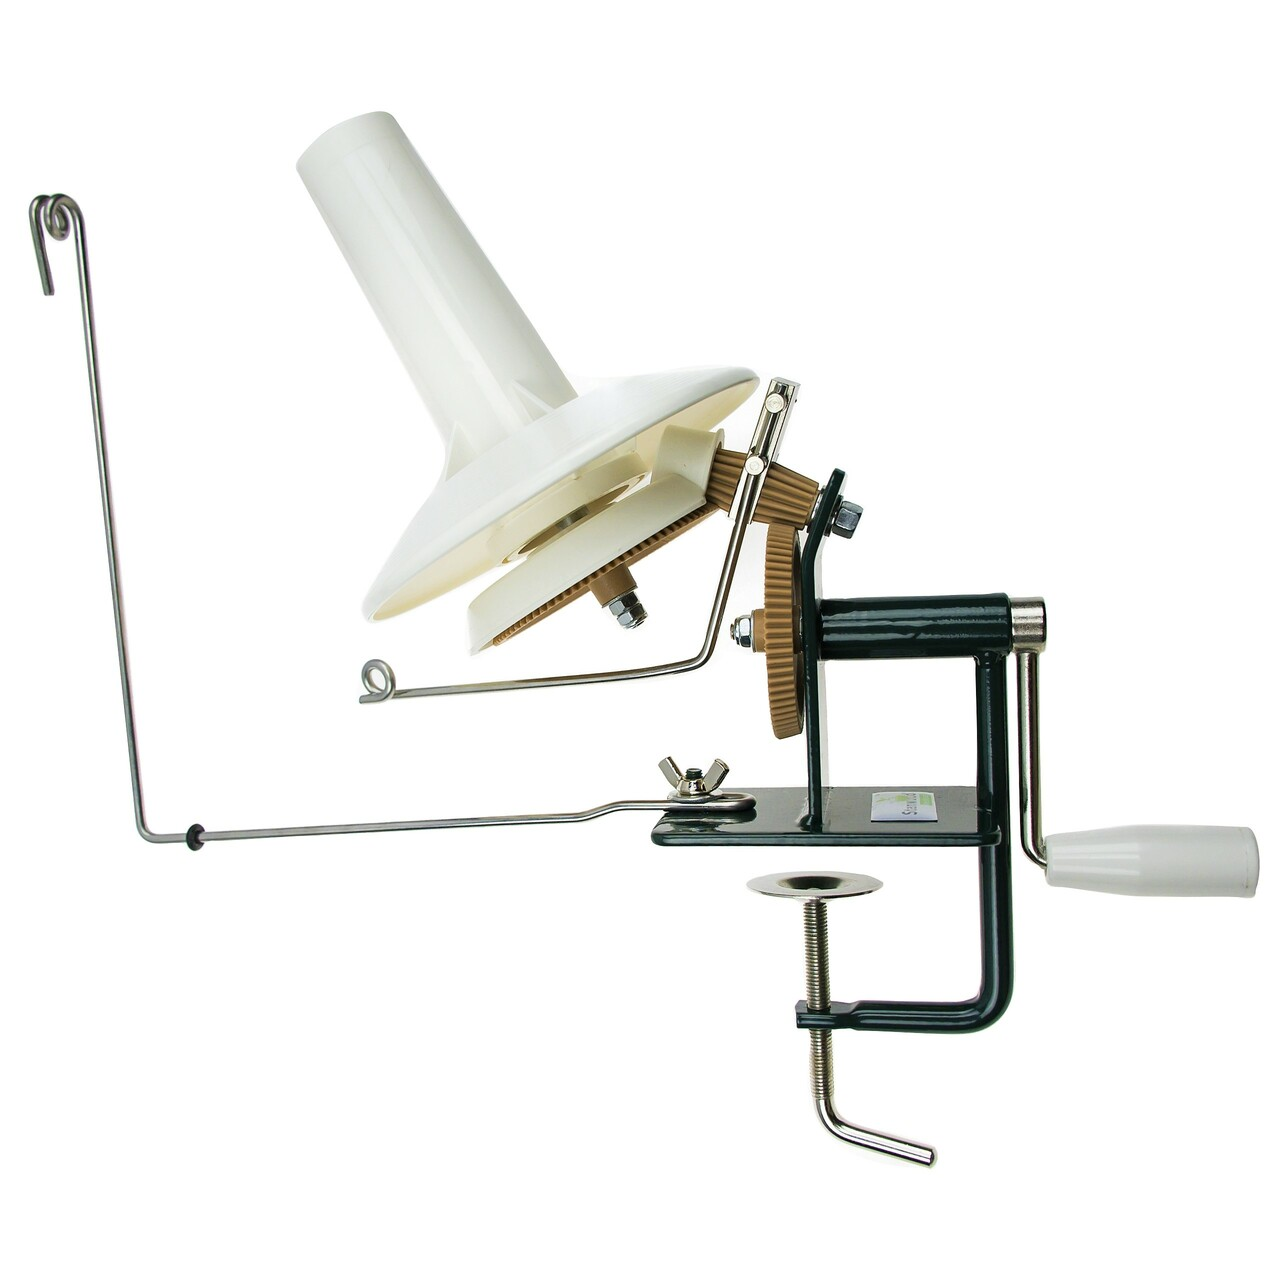 New Spare Cones for Standard Wool Yarn Winder